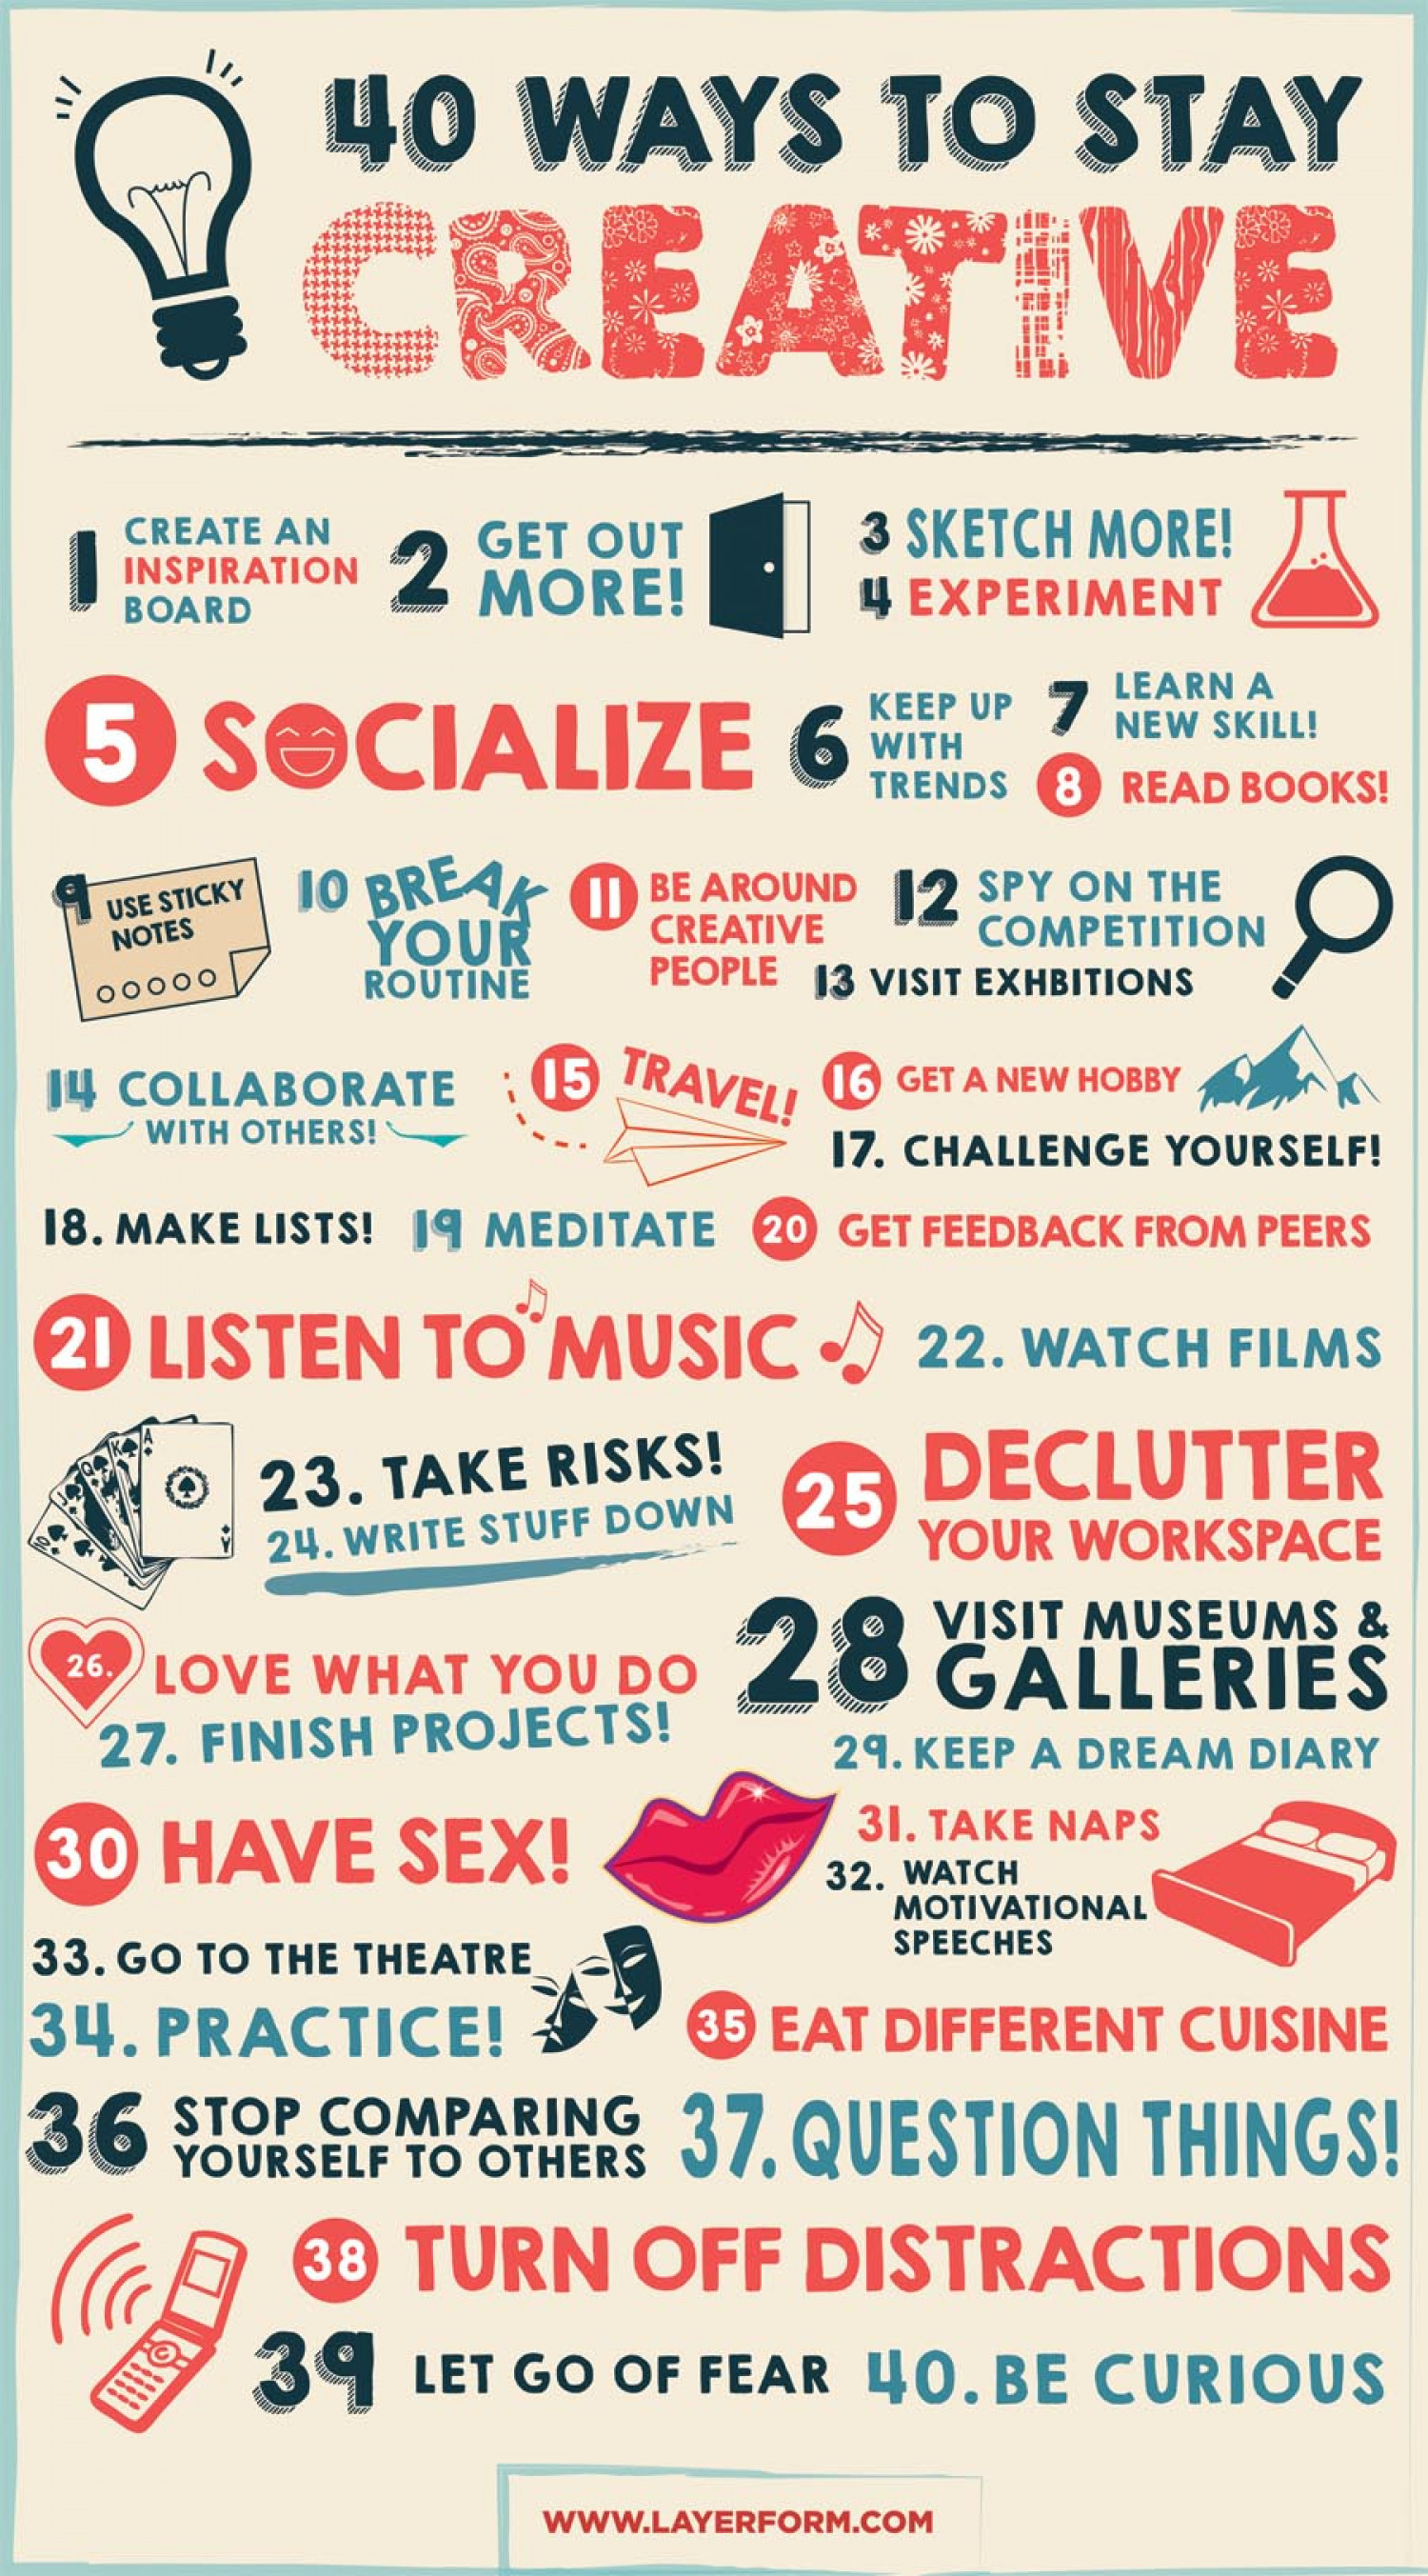 40 Ways to Stay Creative Infographic